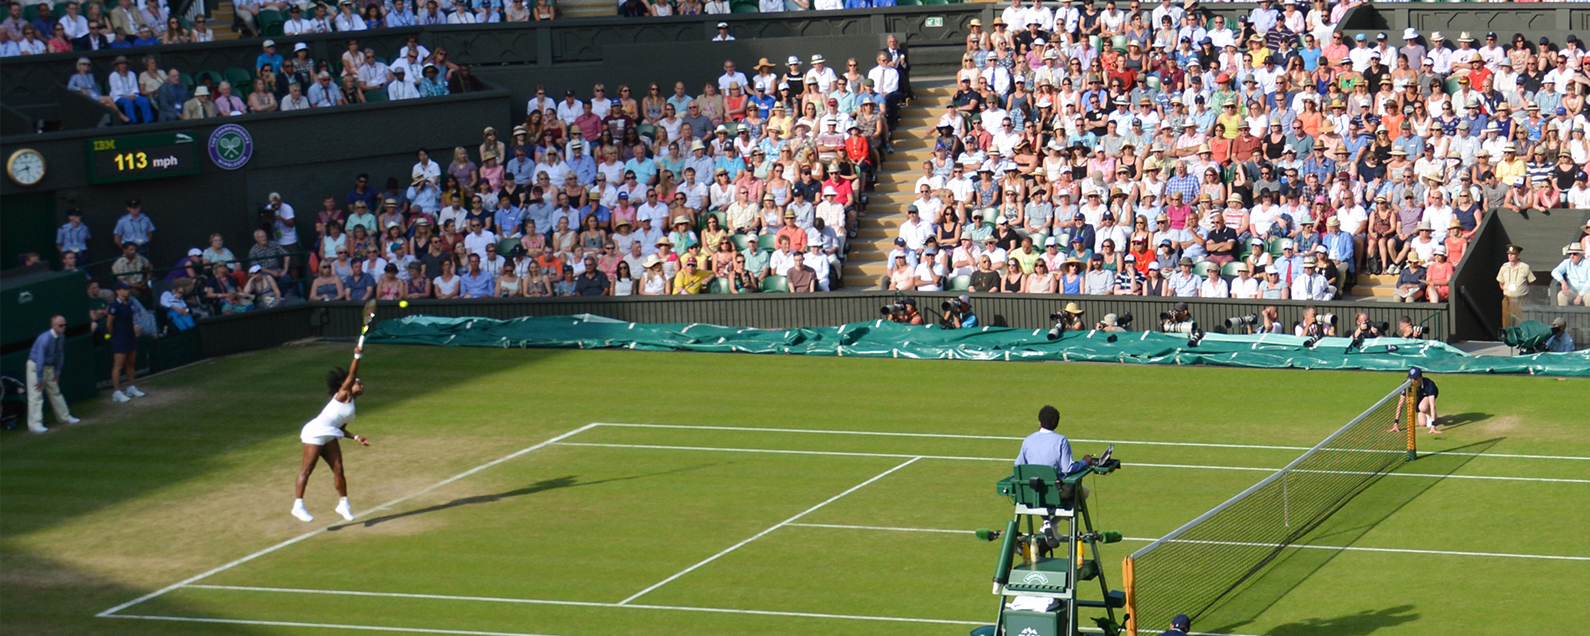 how to watch wimbledon 2018 live on apple tv without cable. Black Bedroom Furniture Sets. Home Design Ideas